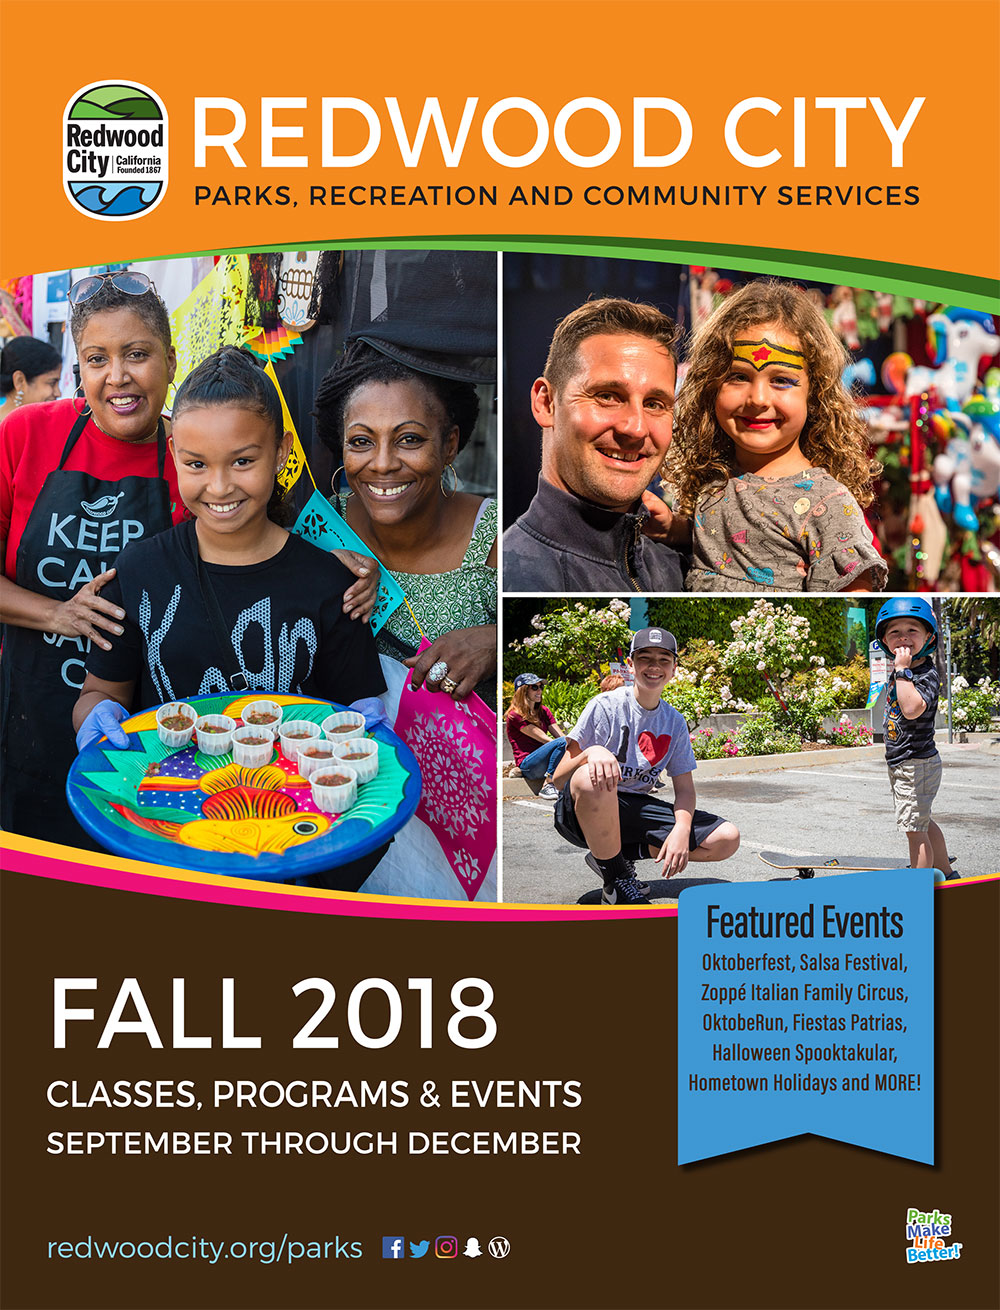 Redwood City Fall 2018 Activity Guide